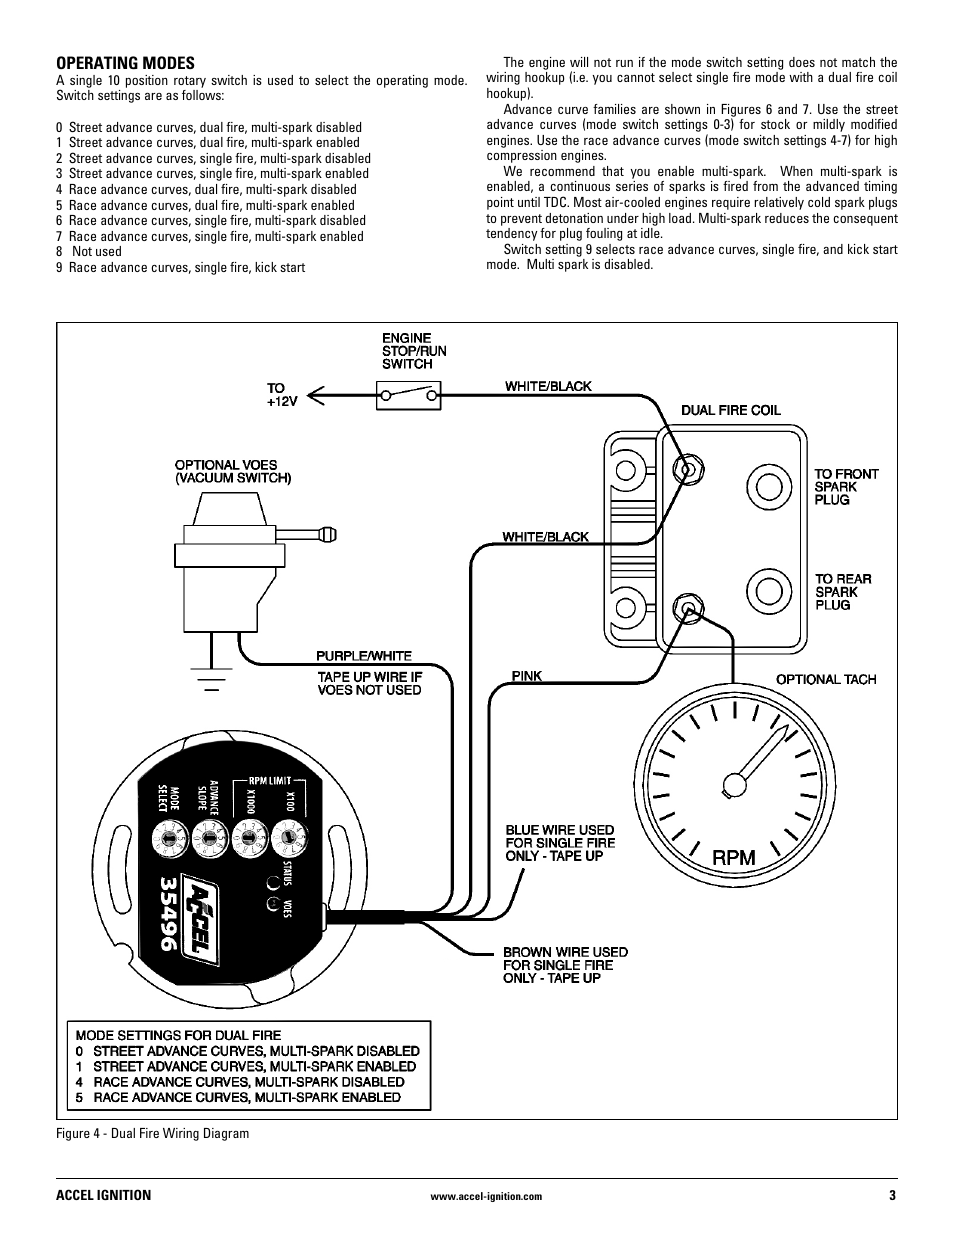 mallory ignition accel ignition 35496 page3 mallory ignition accel ignition 35496 user manual page 3 8 mallory ignition wiring diagram at gsmx.co